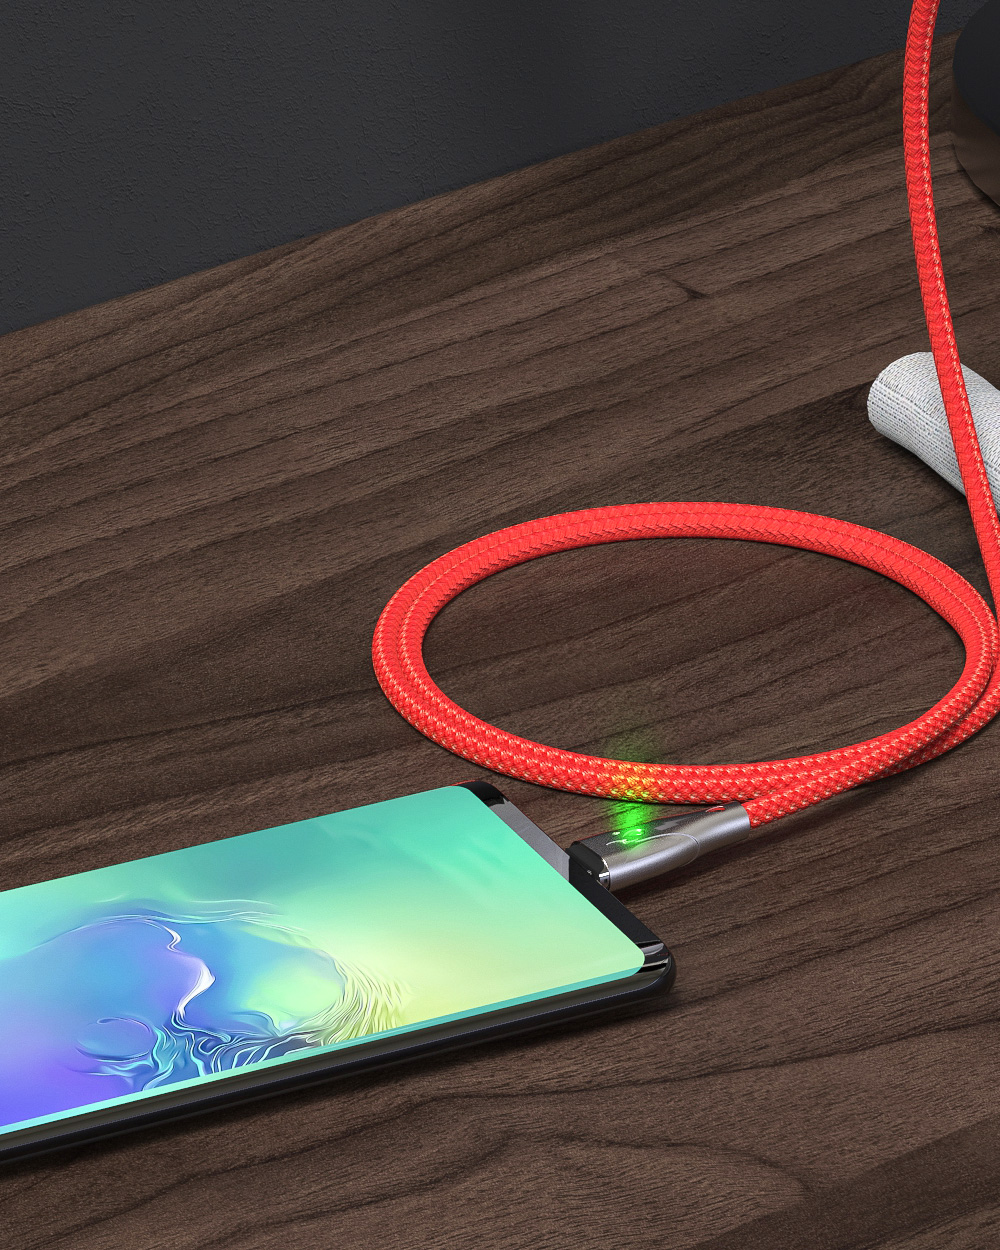 BlitzWolf® BW-TC20 3A Magnetic Type C/Micro USB Nylon Data Cable 1m/1.8m for Huawei P30 Pro Mate 30 5G Xiaomi Mi9 9Pro Oneplus 7T S10+ Note 10